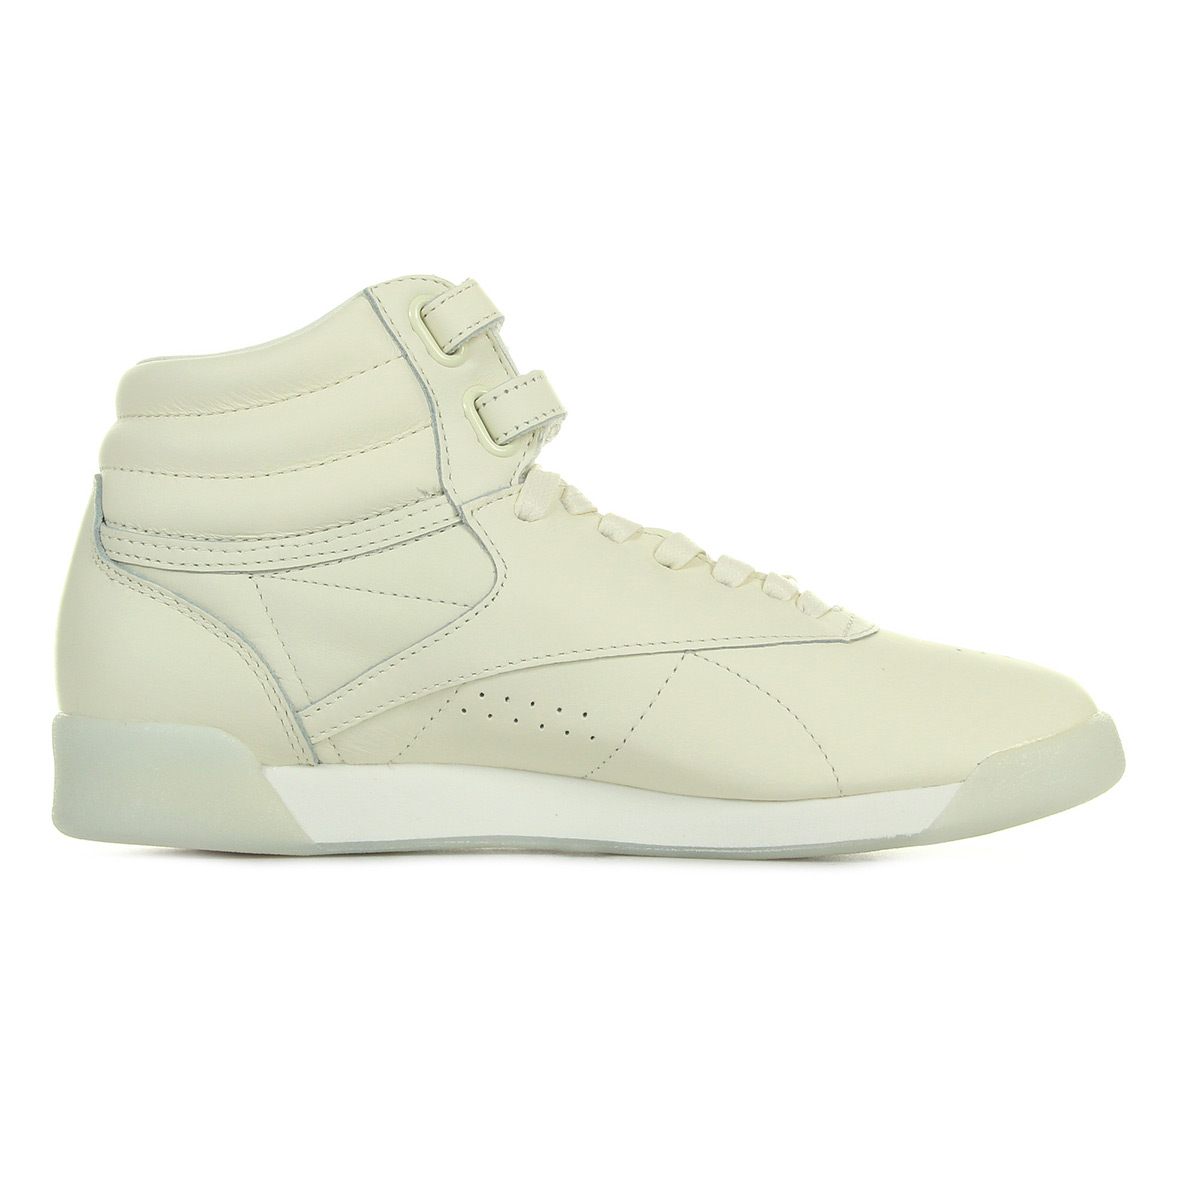 Chaussures Hi Taille Baskets Beige Fs Classic Reebok Femme Face 35 n8wkXO0P